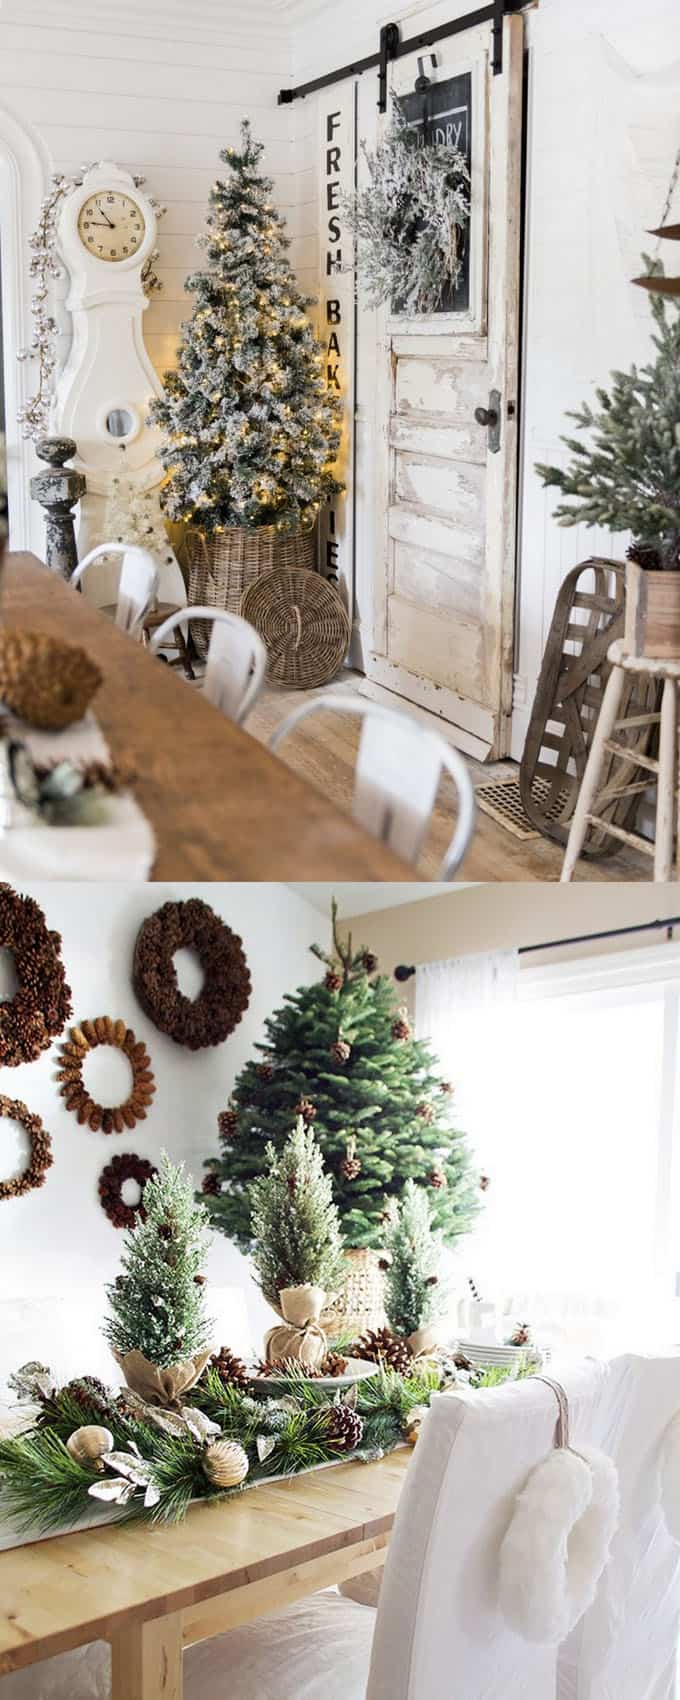 100 favorite christmas decorating ideas every room apieceofrainbow 4 - 100+ Favorite Christmas Decorating Ideas For Every Room in Your Home : Part 2